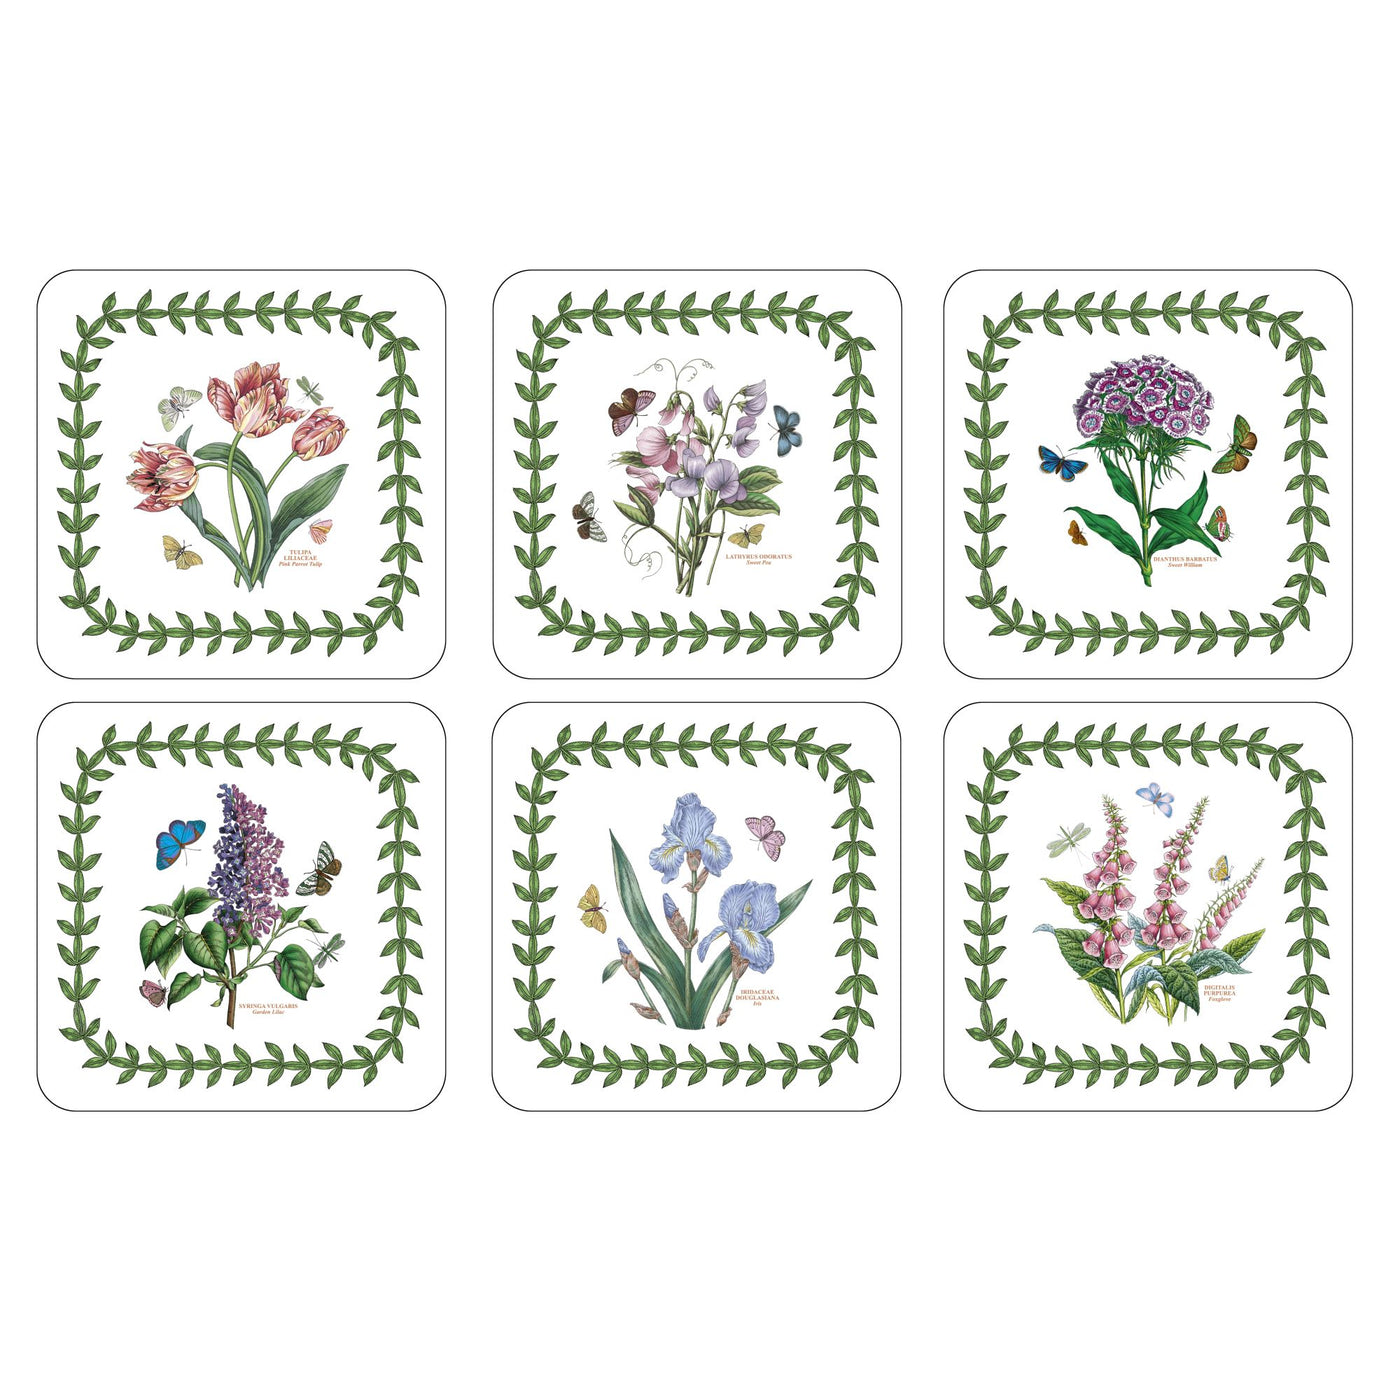 Botanic Garden Coasters, Set of 6